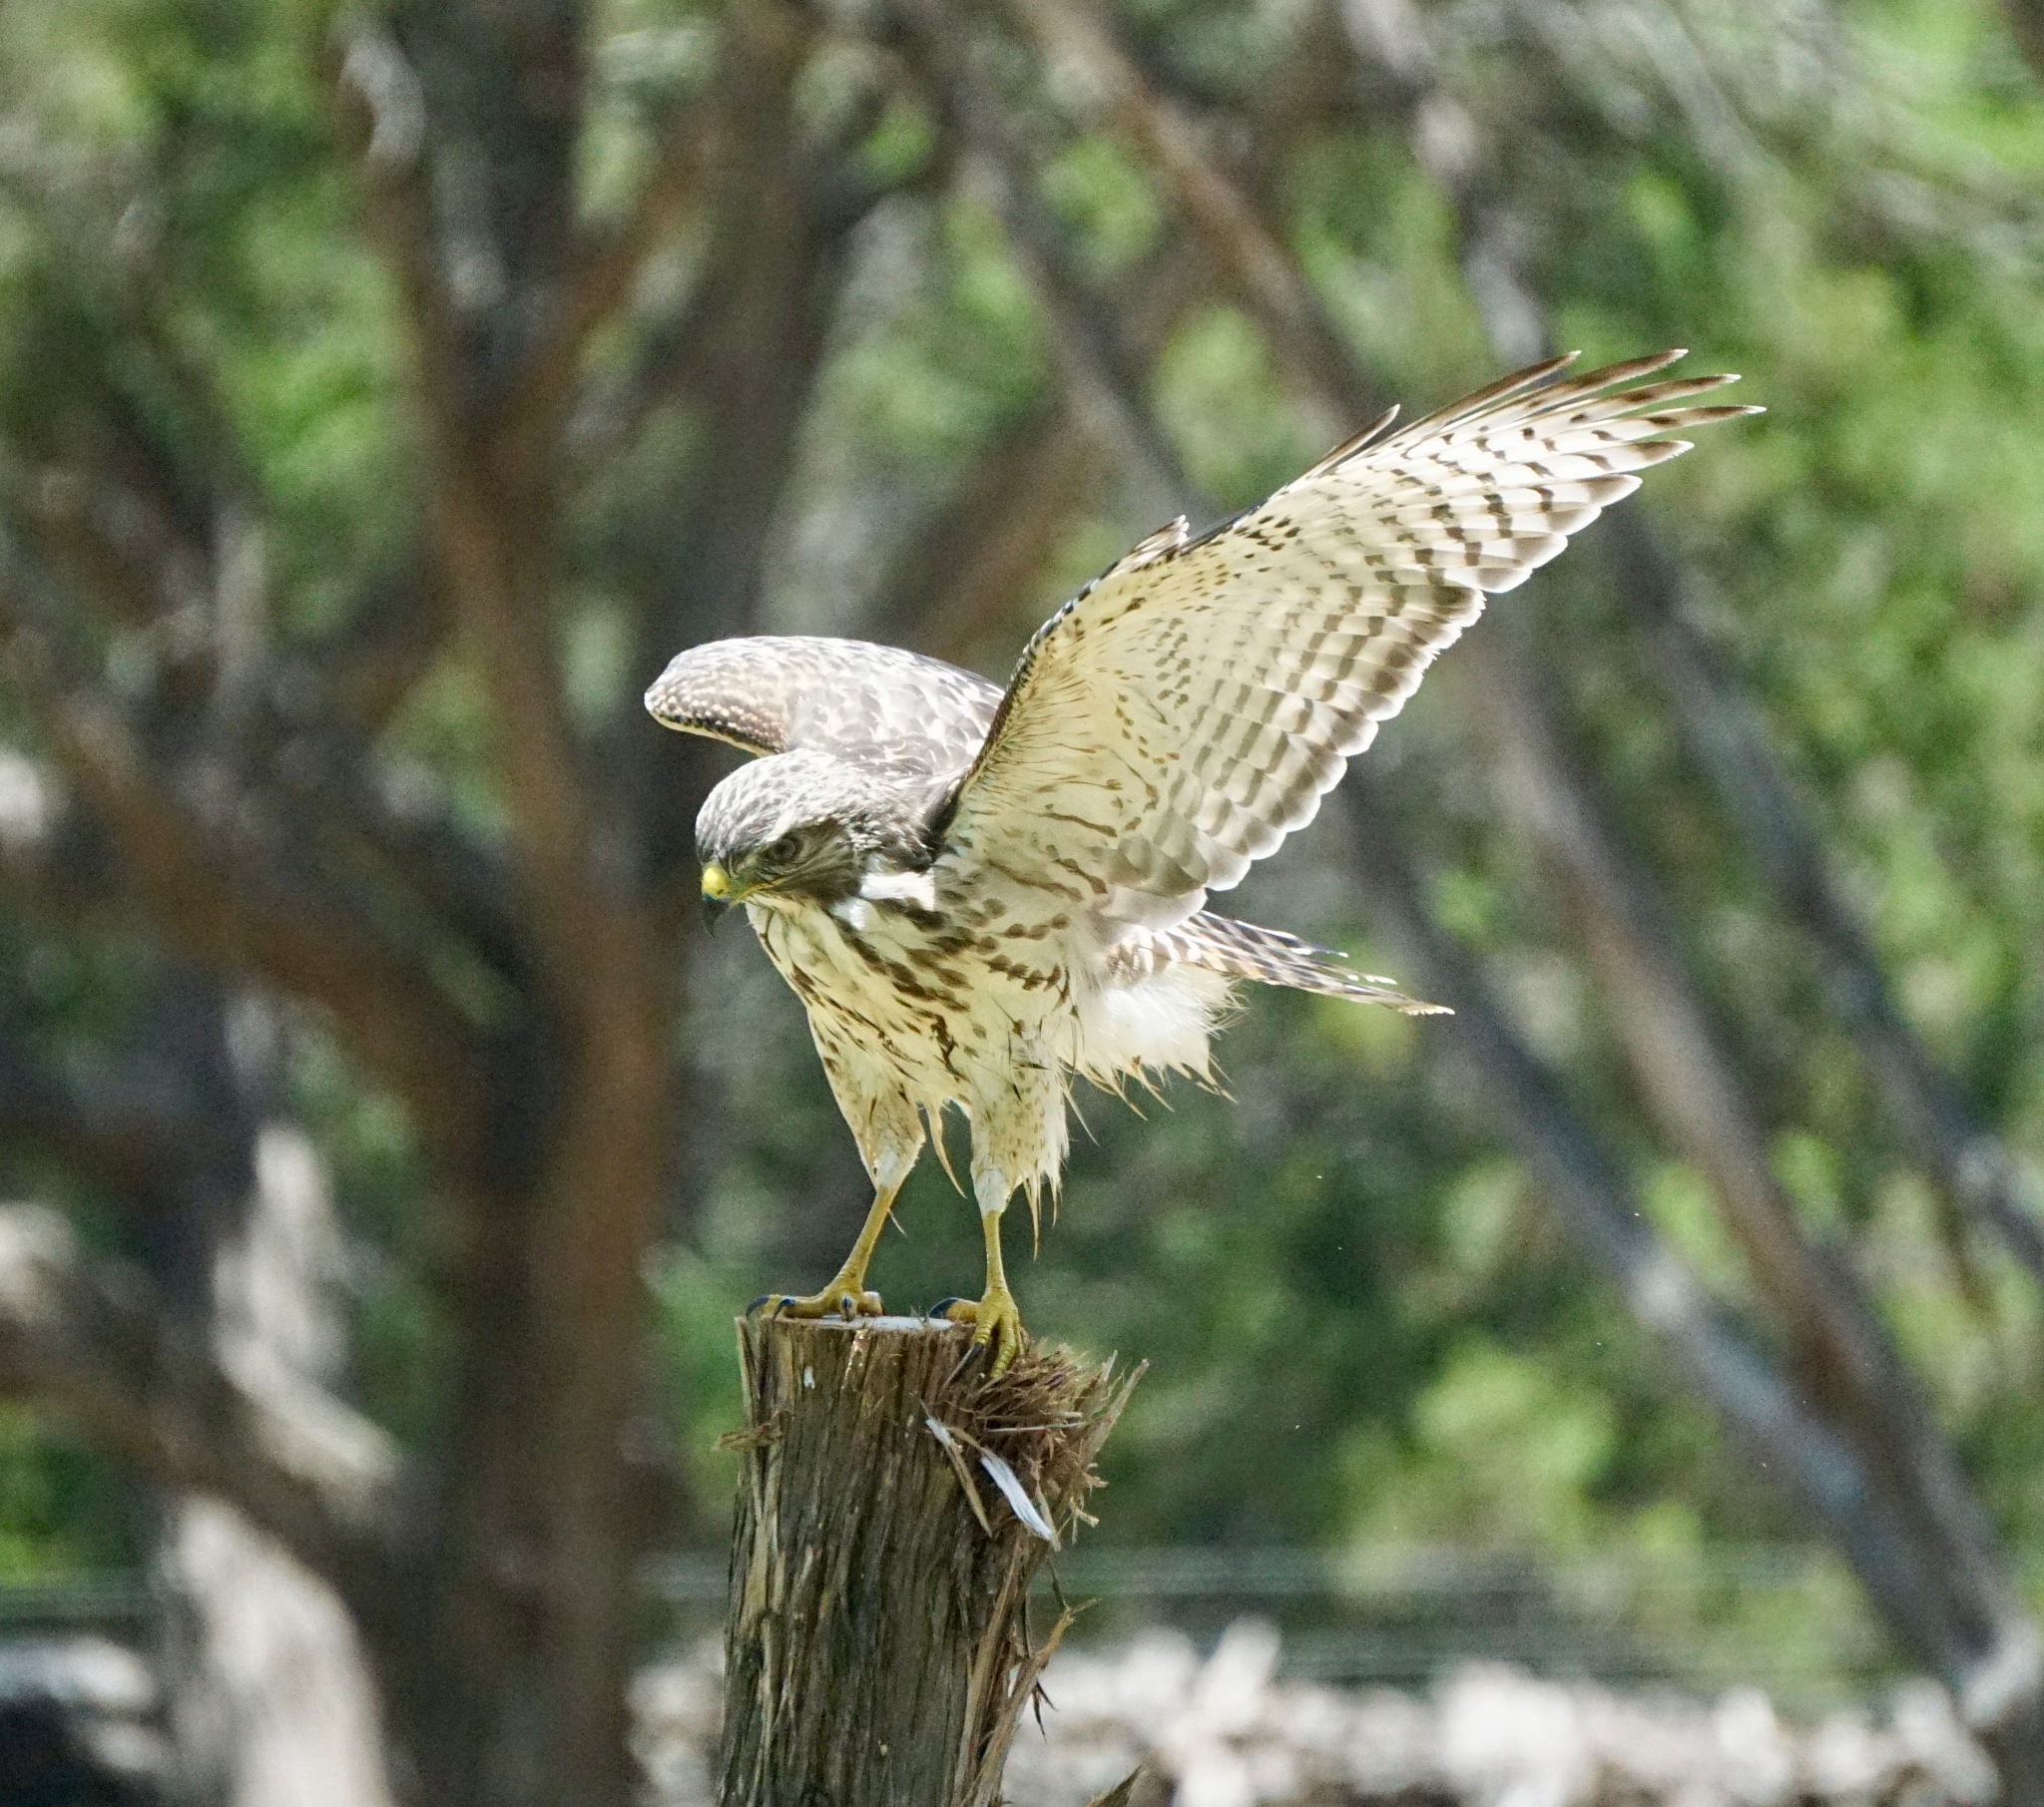 Juvenile Red-Tailed Hawk by texaspicturegirl